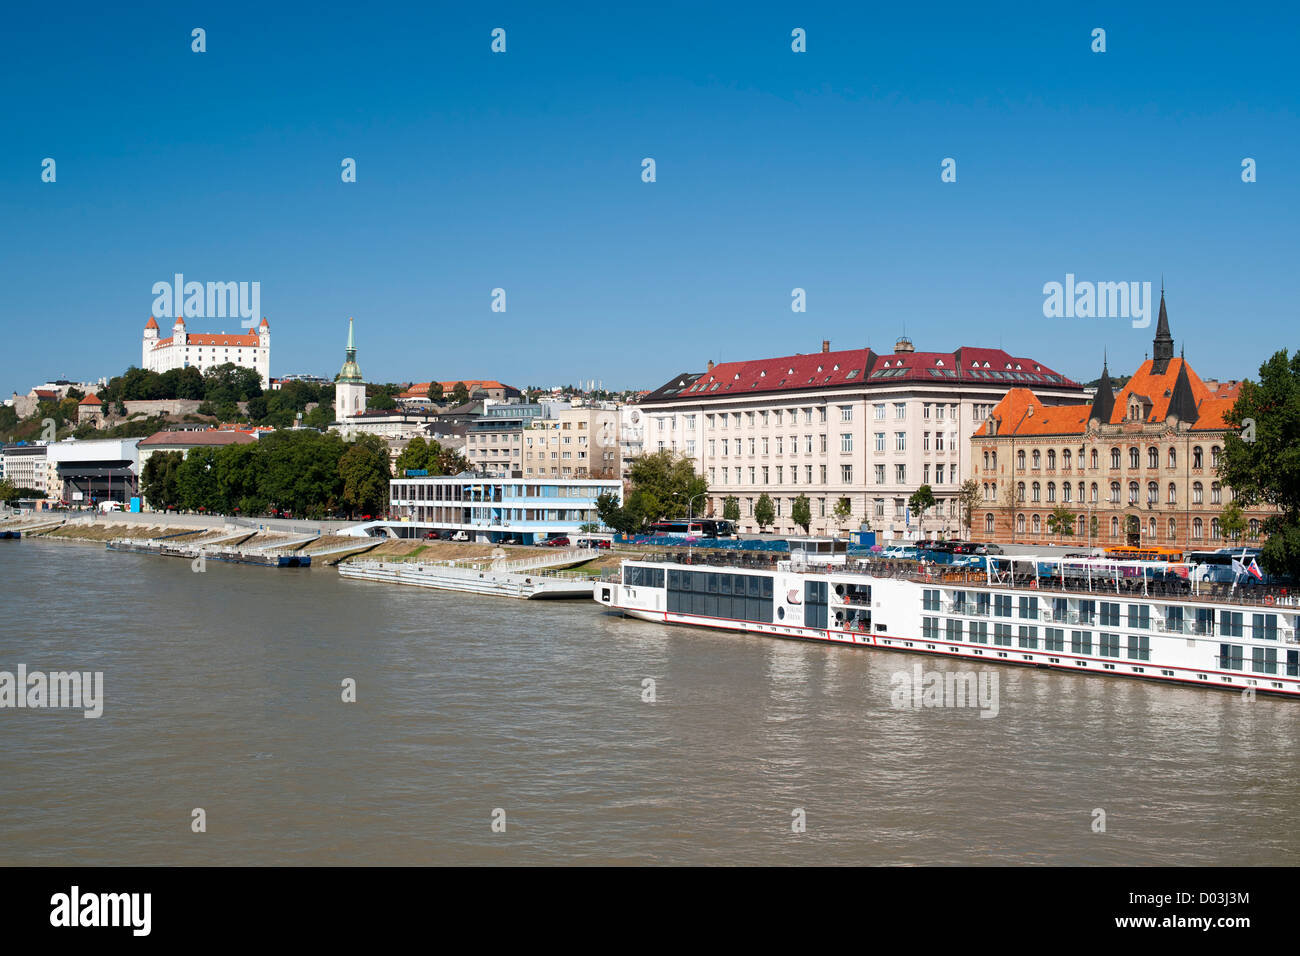 View of Bratislava, the capital of Slovakia. Visible are Bratislava castle, St Martin's Cathedral and the Danube - Stock Image